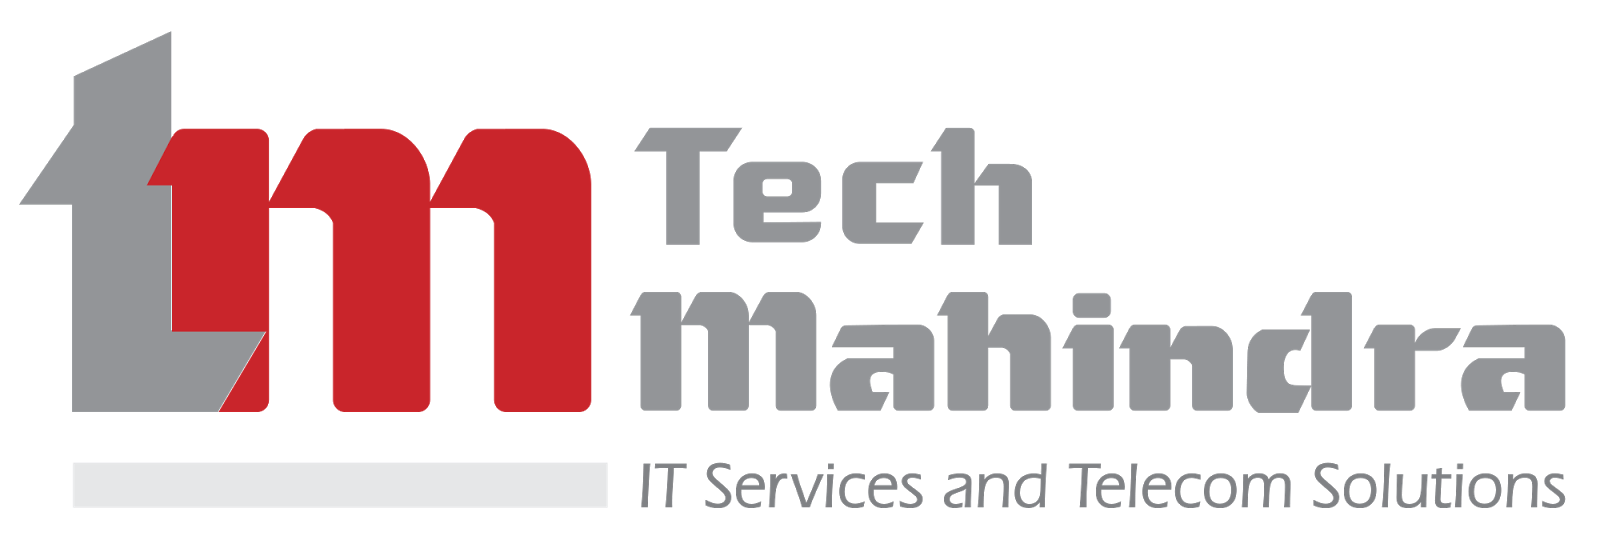 tech mahindra technical interview questions i am ceo tech mahindra technical interview questions